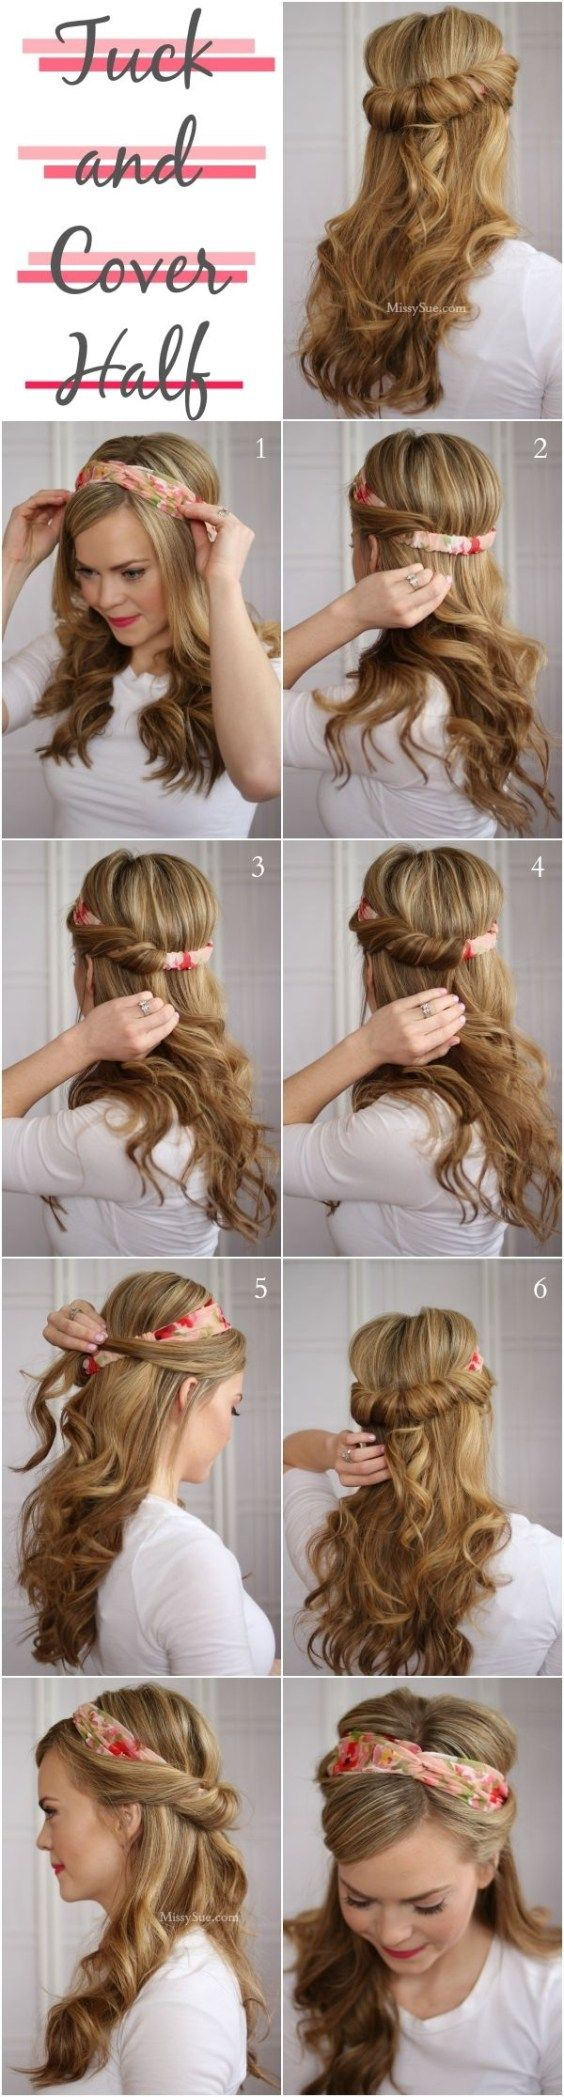 best coafuri images on pinterest hairstyle ideas baby girl